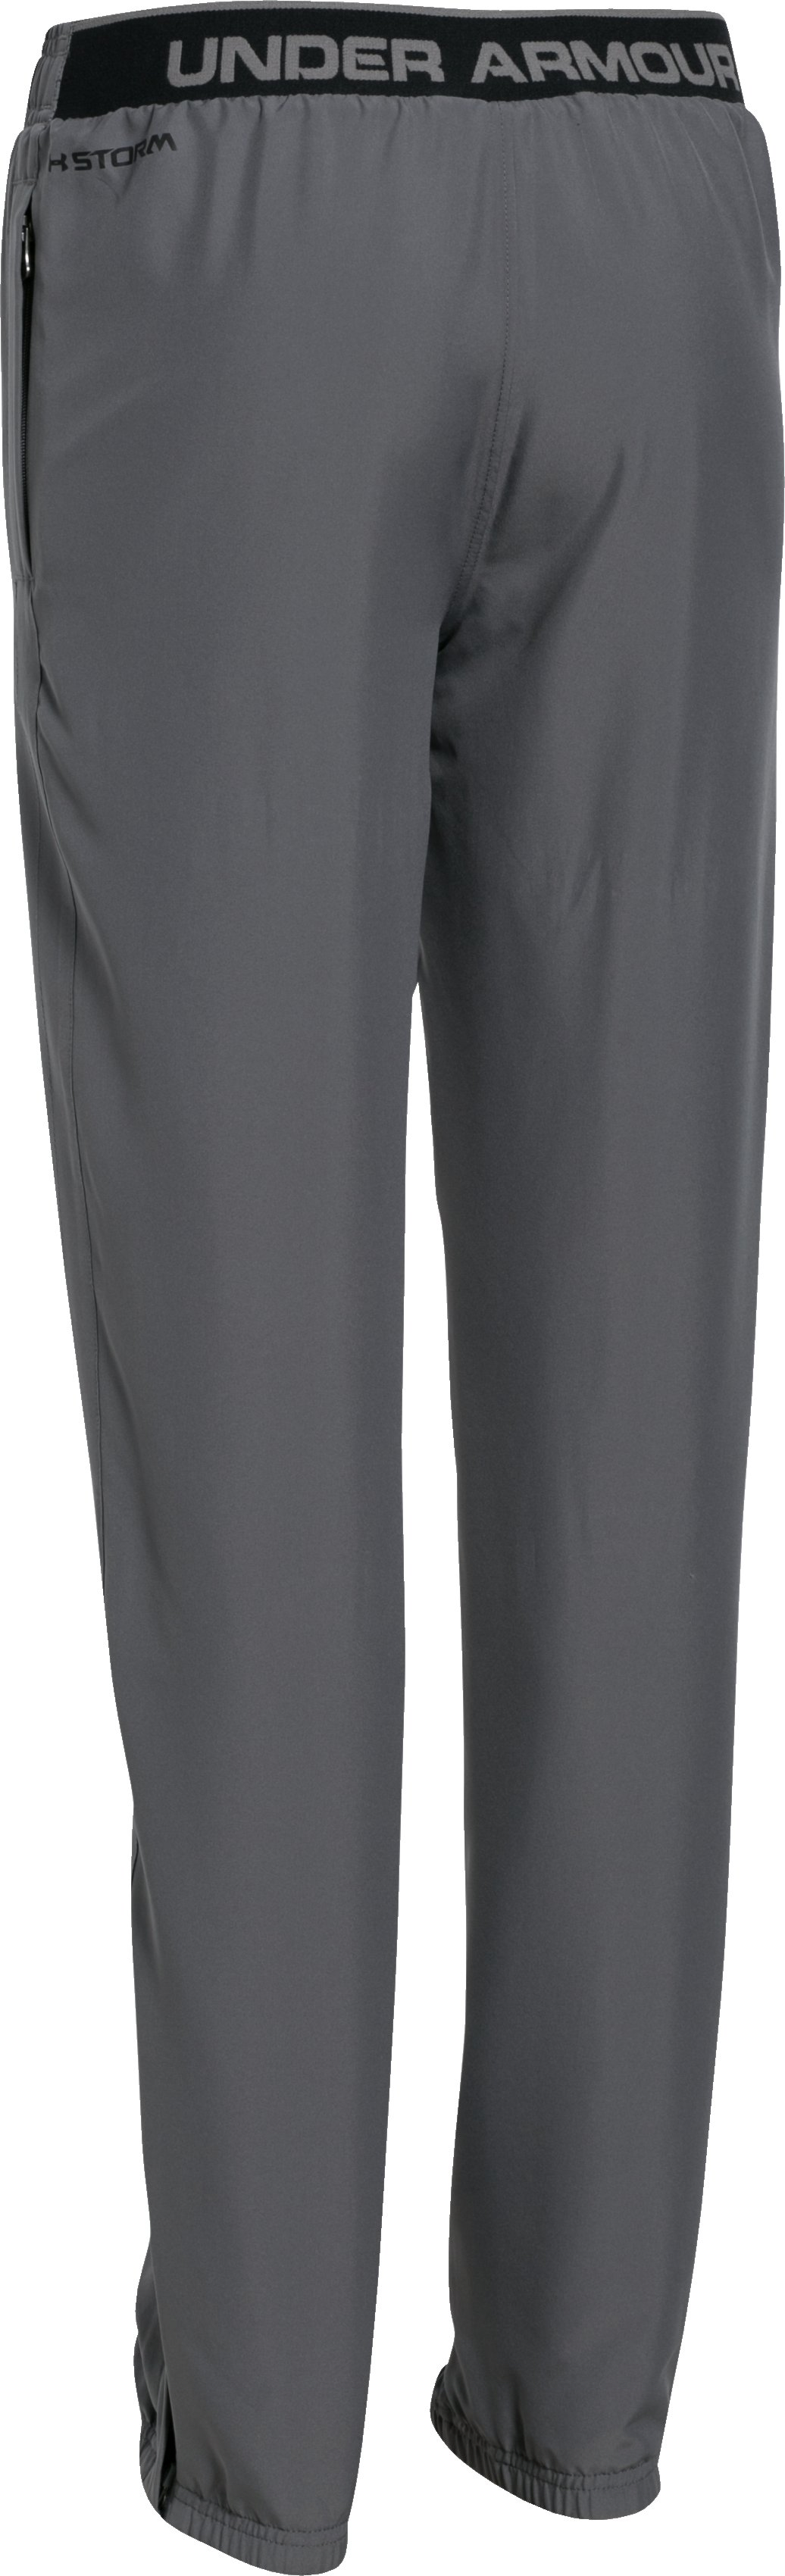 Boys' UA Storm Powerhouse Pants, Graphite,